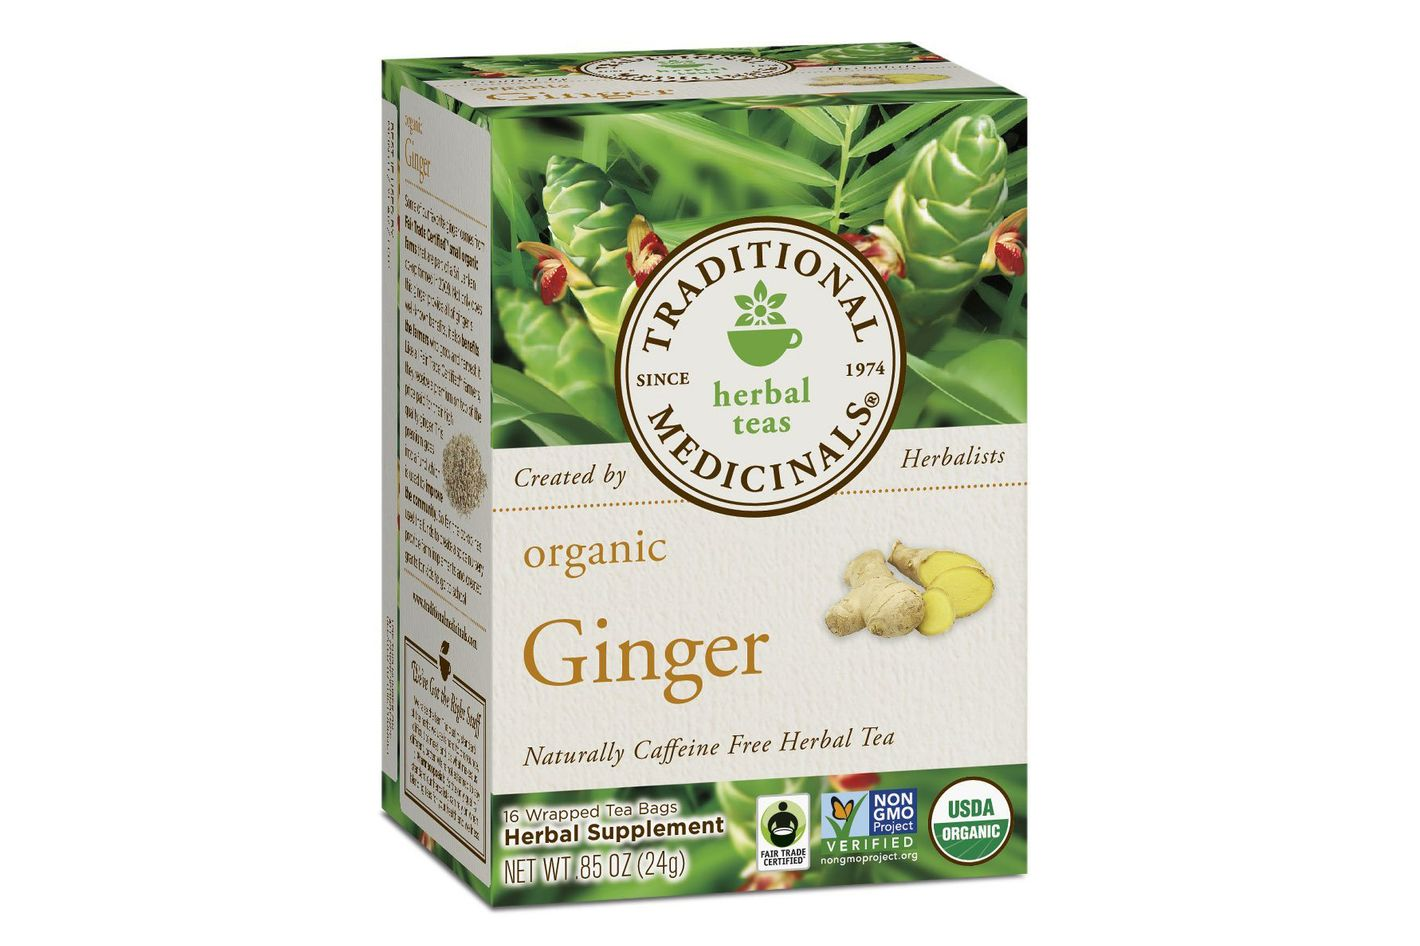 Traditional Medicinals Organic Ginger Tea